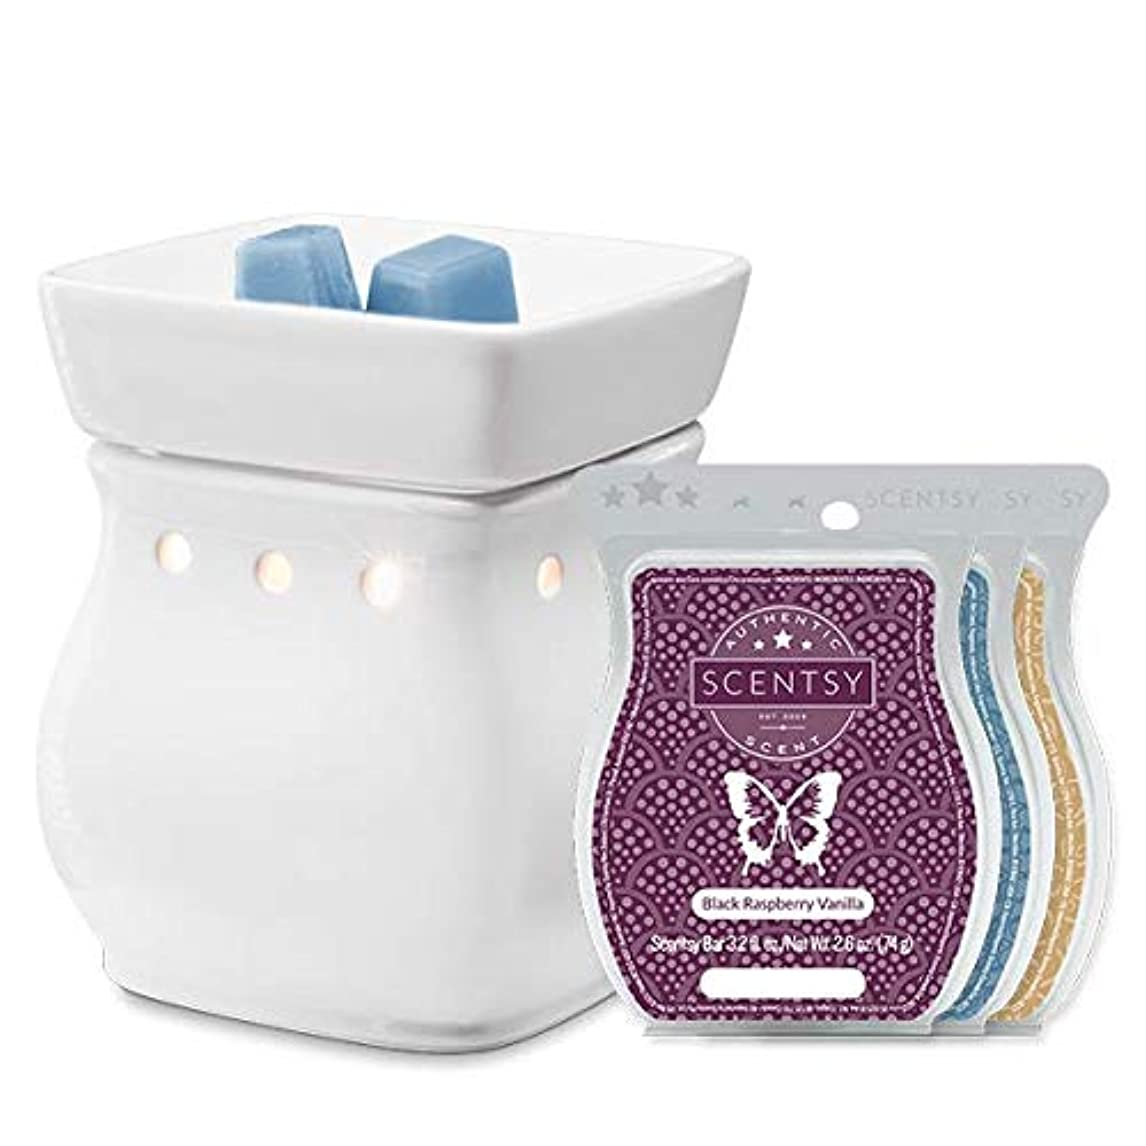 Scentsy Classic Curve-Gloss White Warmer with Luna, Black Raspberry Vanilla and Vanilla Bean Buttercream Wax qhab3696066026